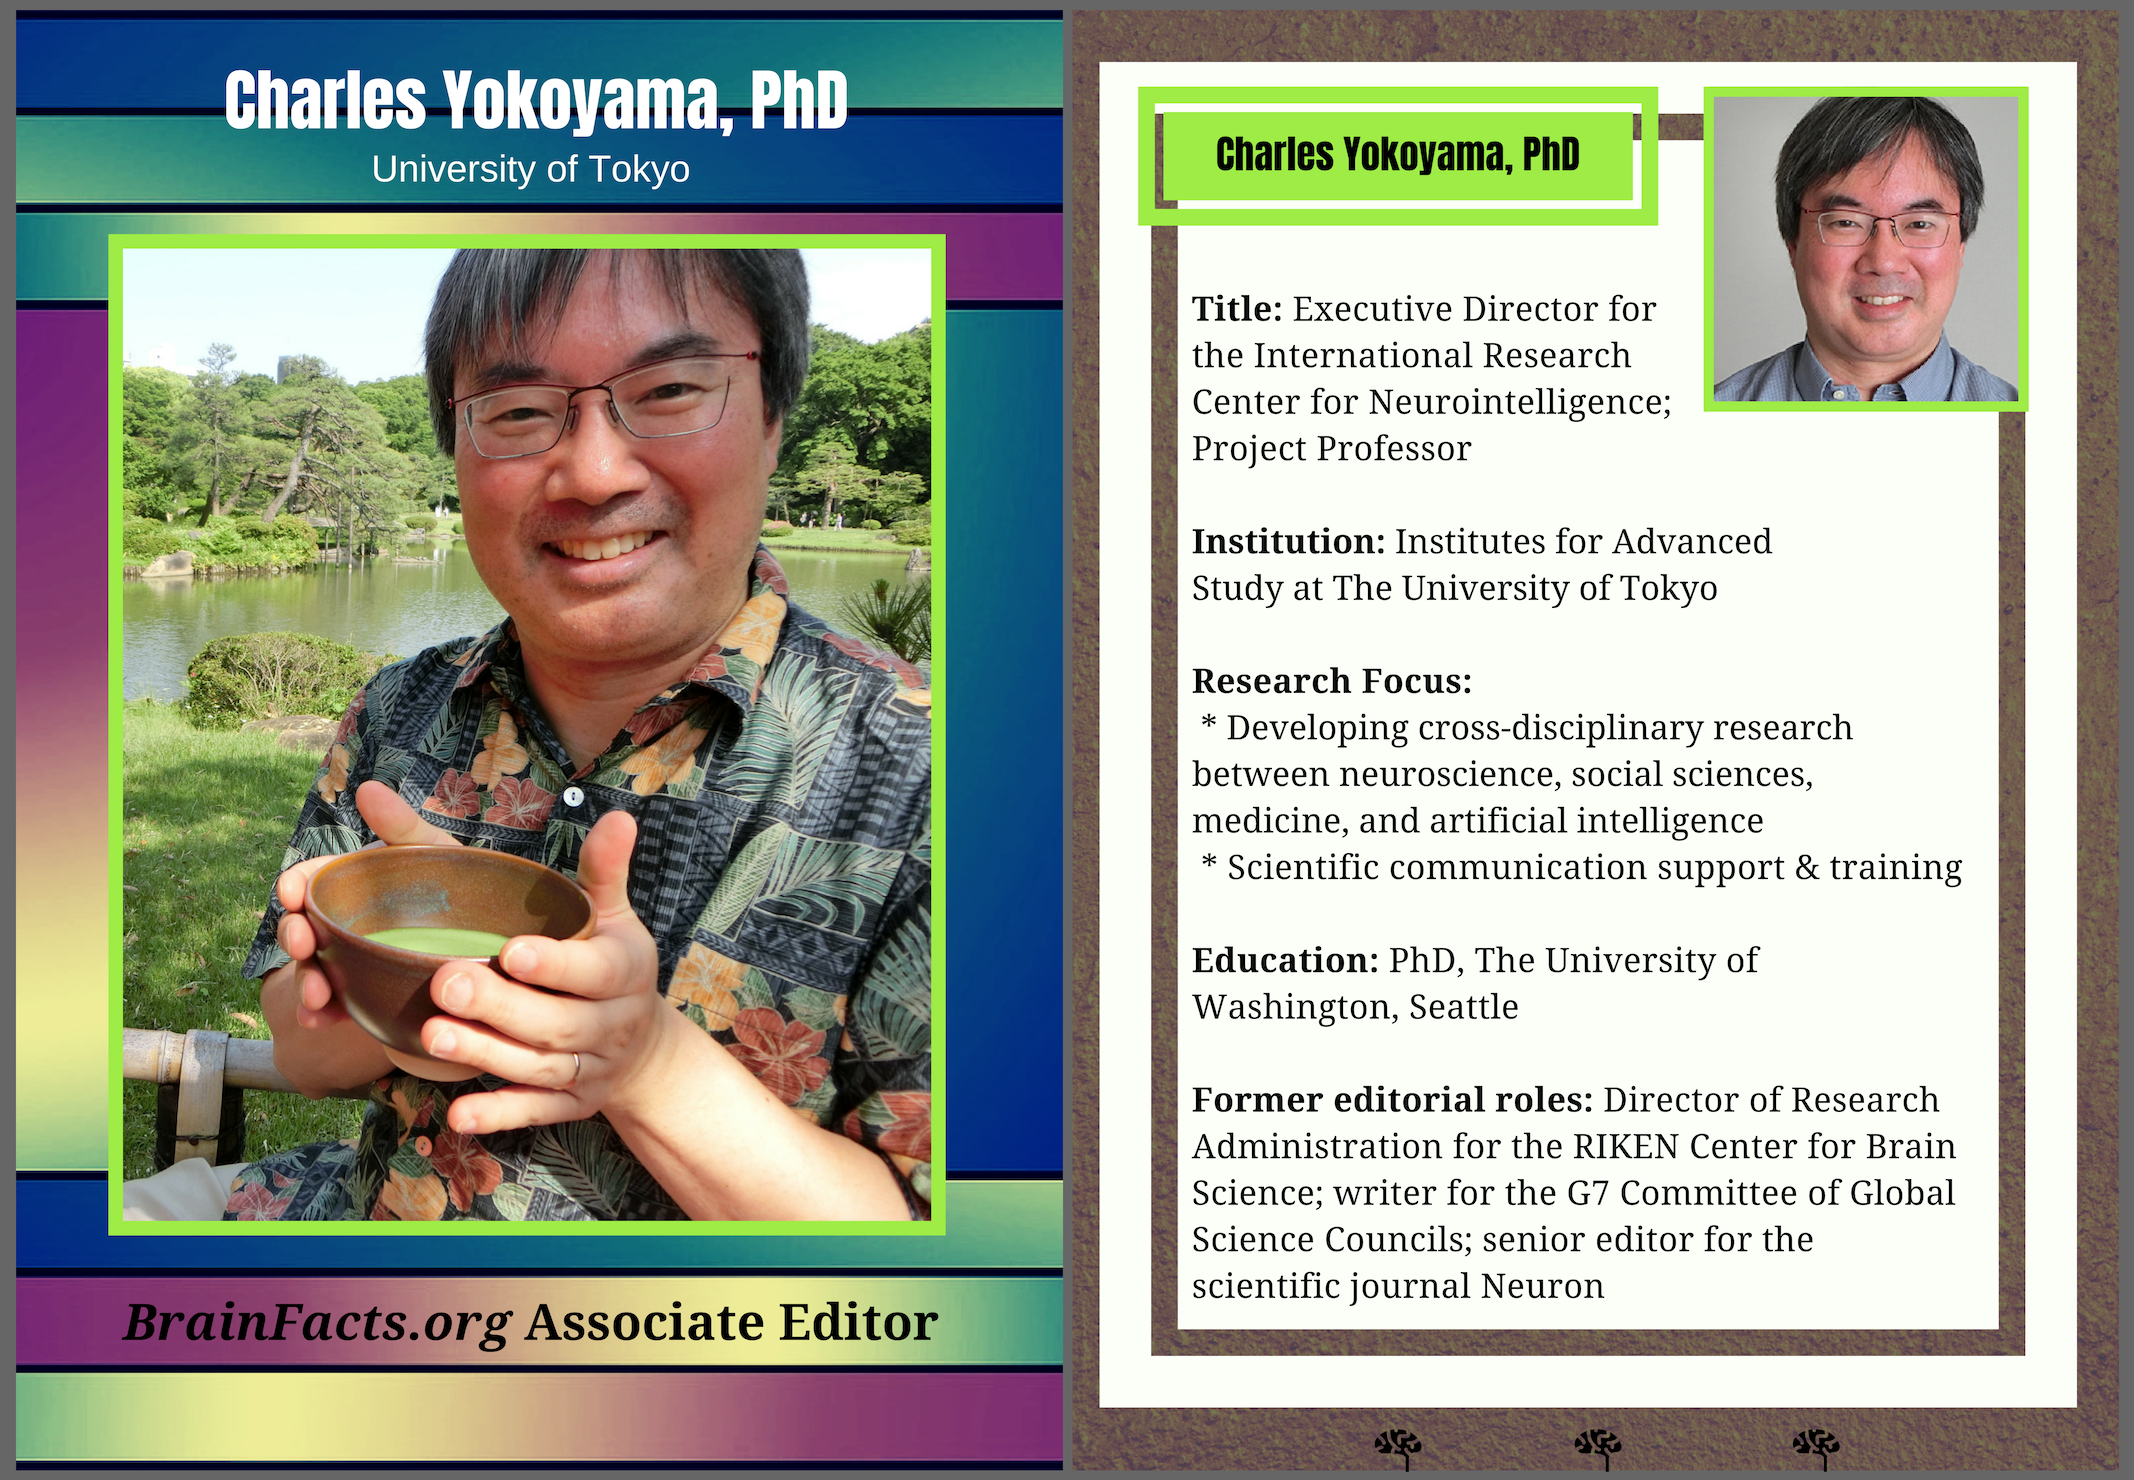 Photograph of Charles Yokoyama with facts to the right of it